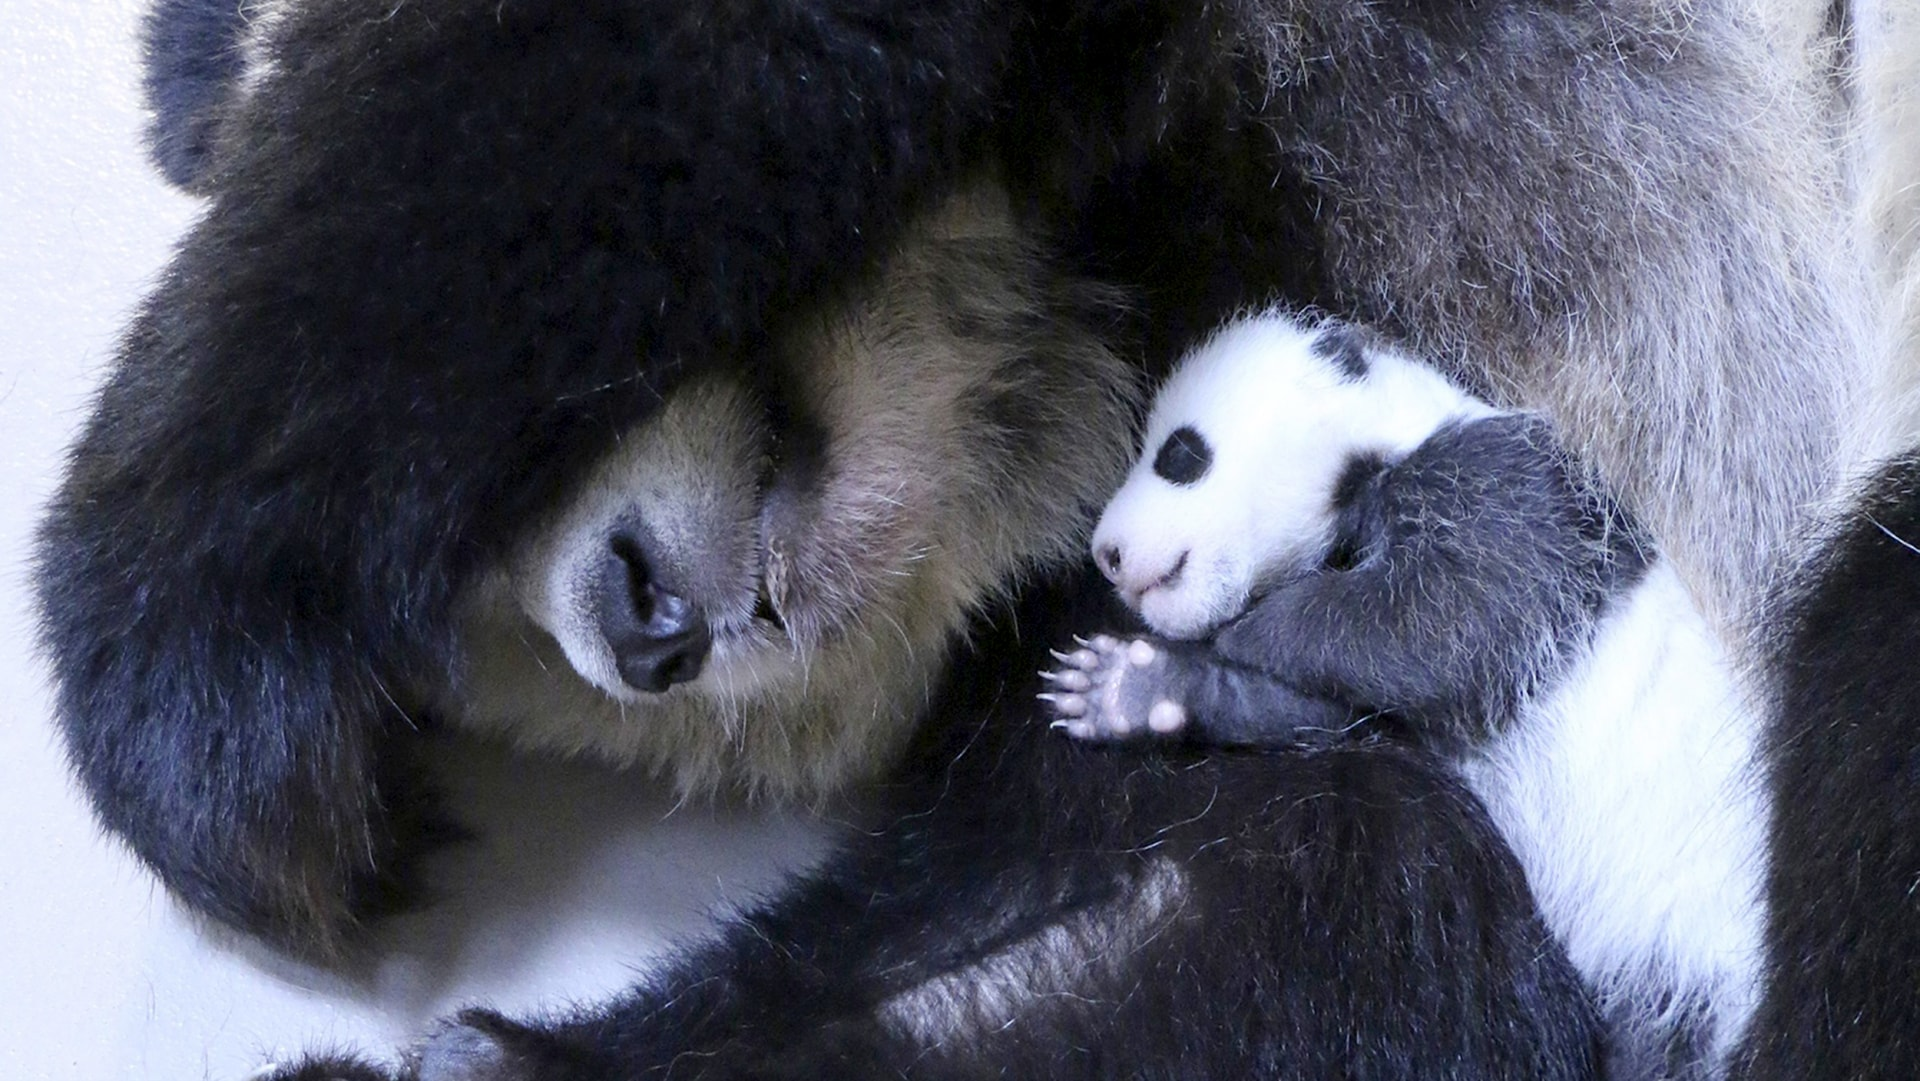 Image: Giant panda mother Er Shun holds one of her twin cubs in the maternity area of the Giant Panda Exhibit at the Toronto Zoo